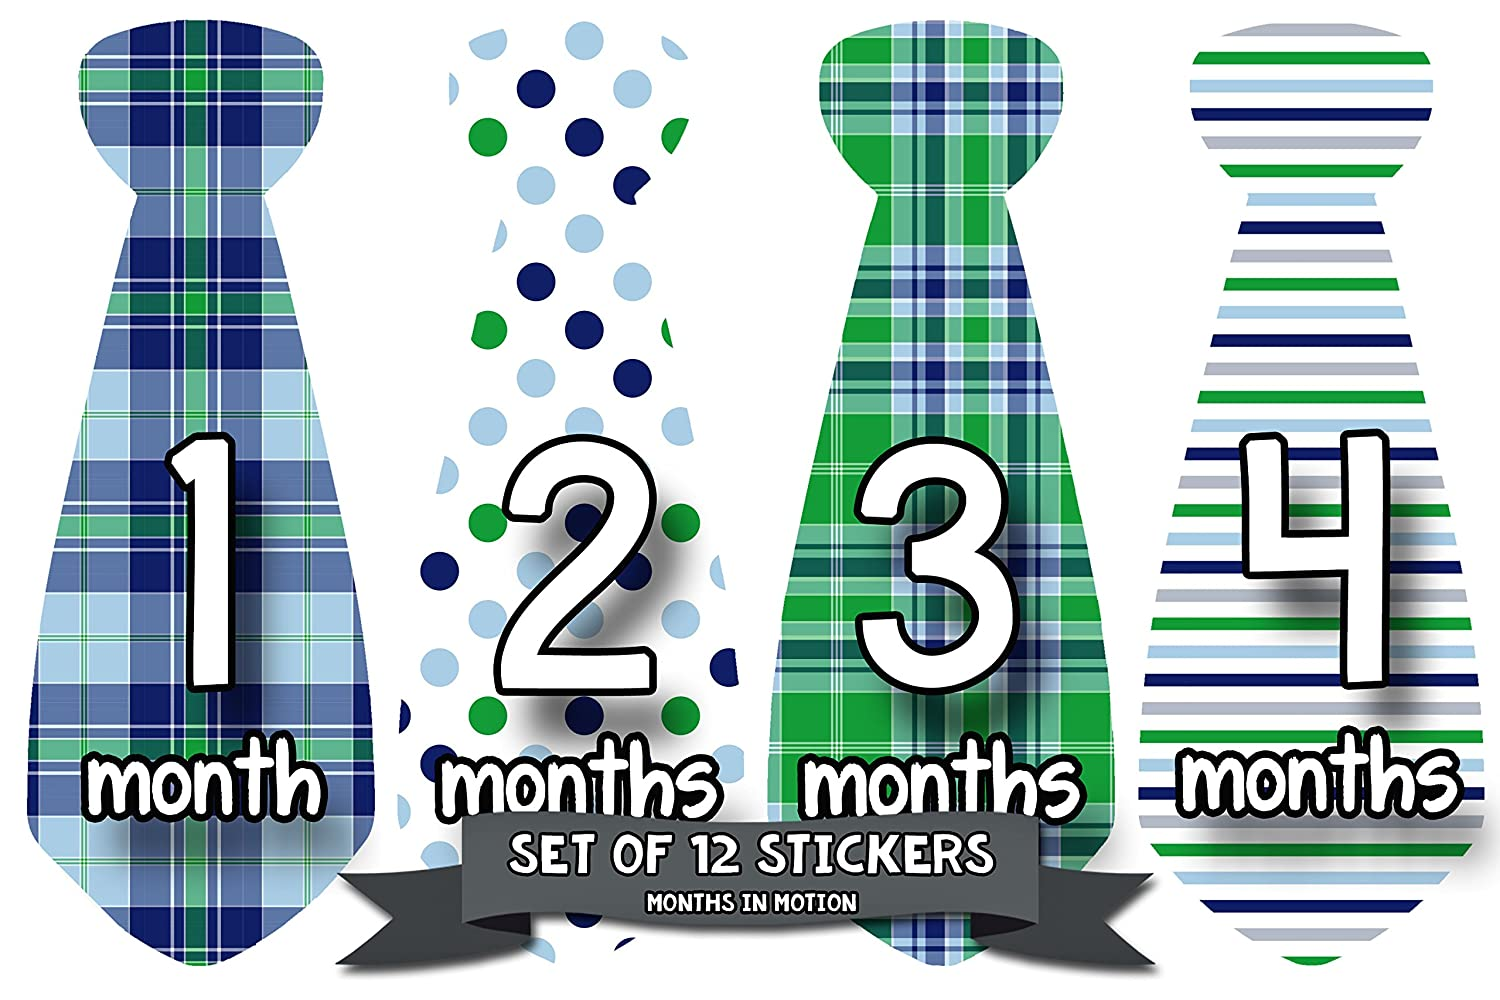 Baby Other Baby Keepsakes Months In Motion 712 Monthly Baby Stickers Necktie Tie Baby Boy Months 1-12 1-12